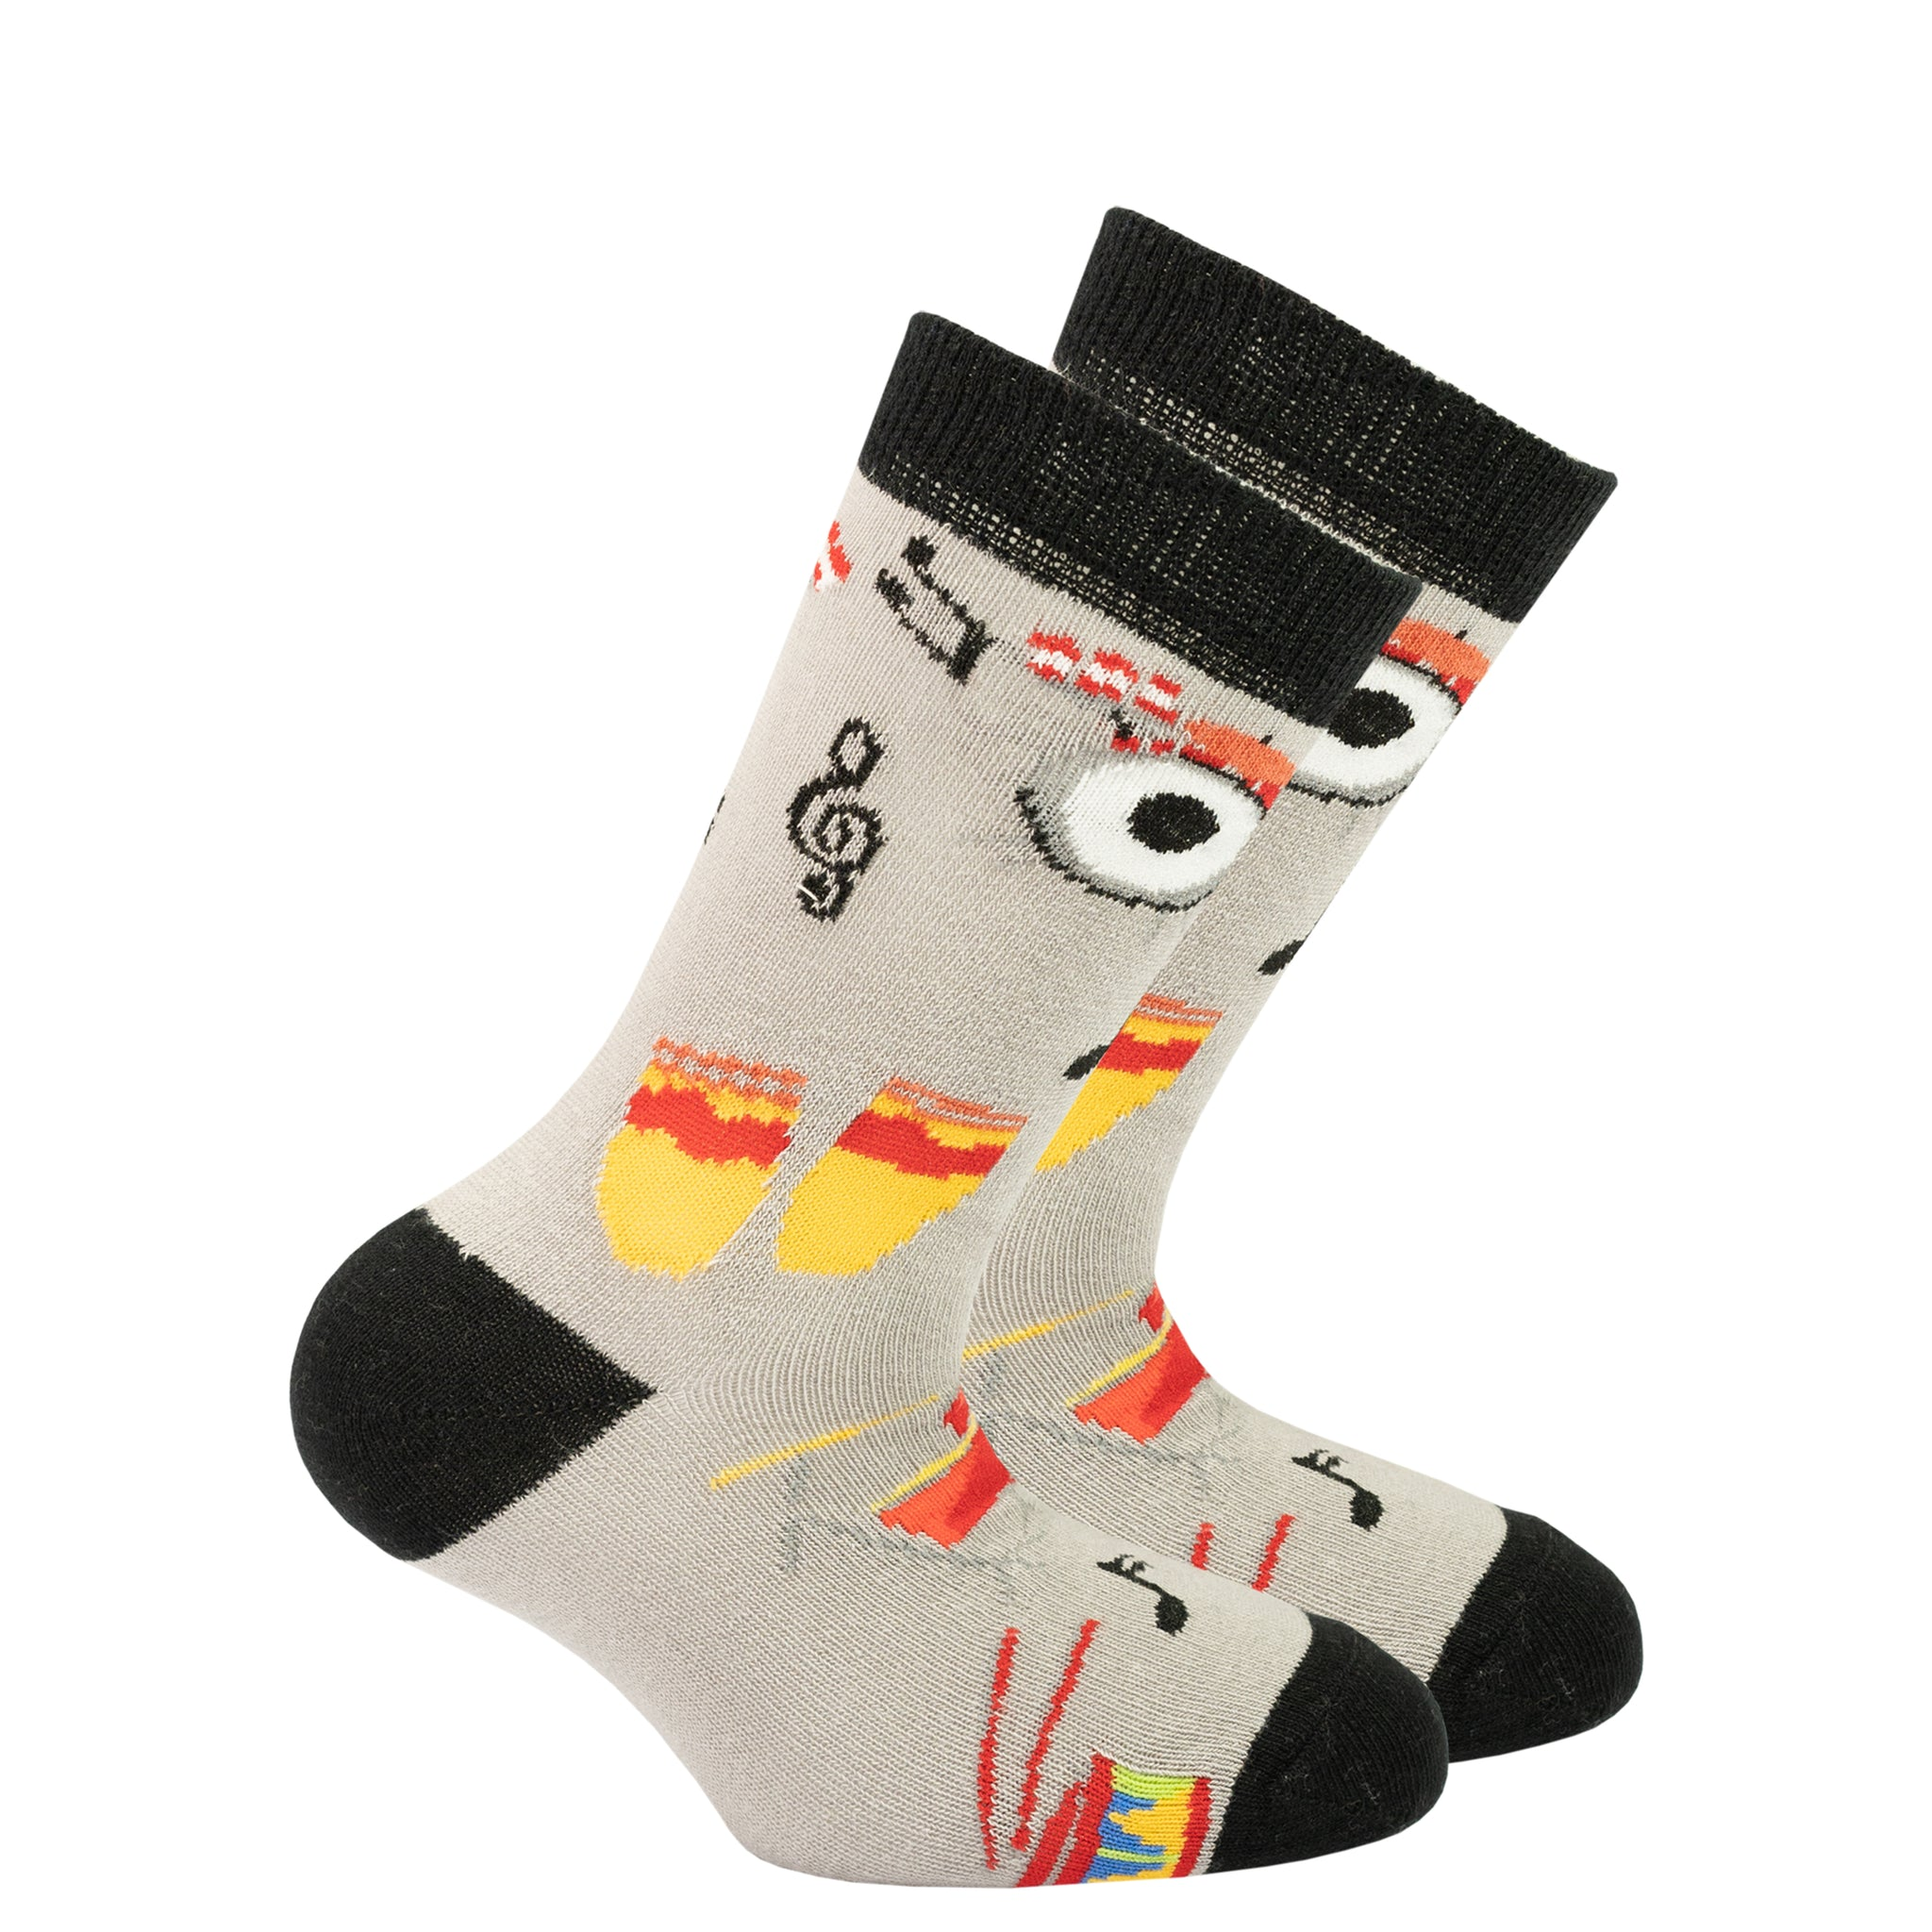 Kids Drums Socks black and grey